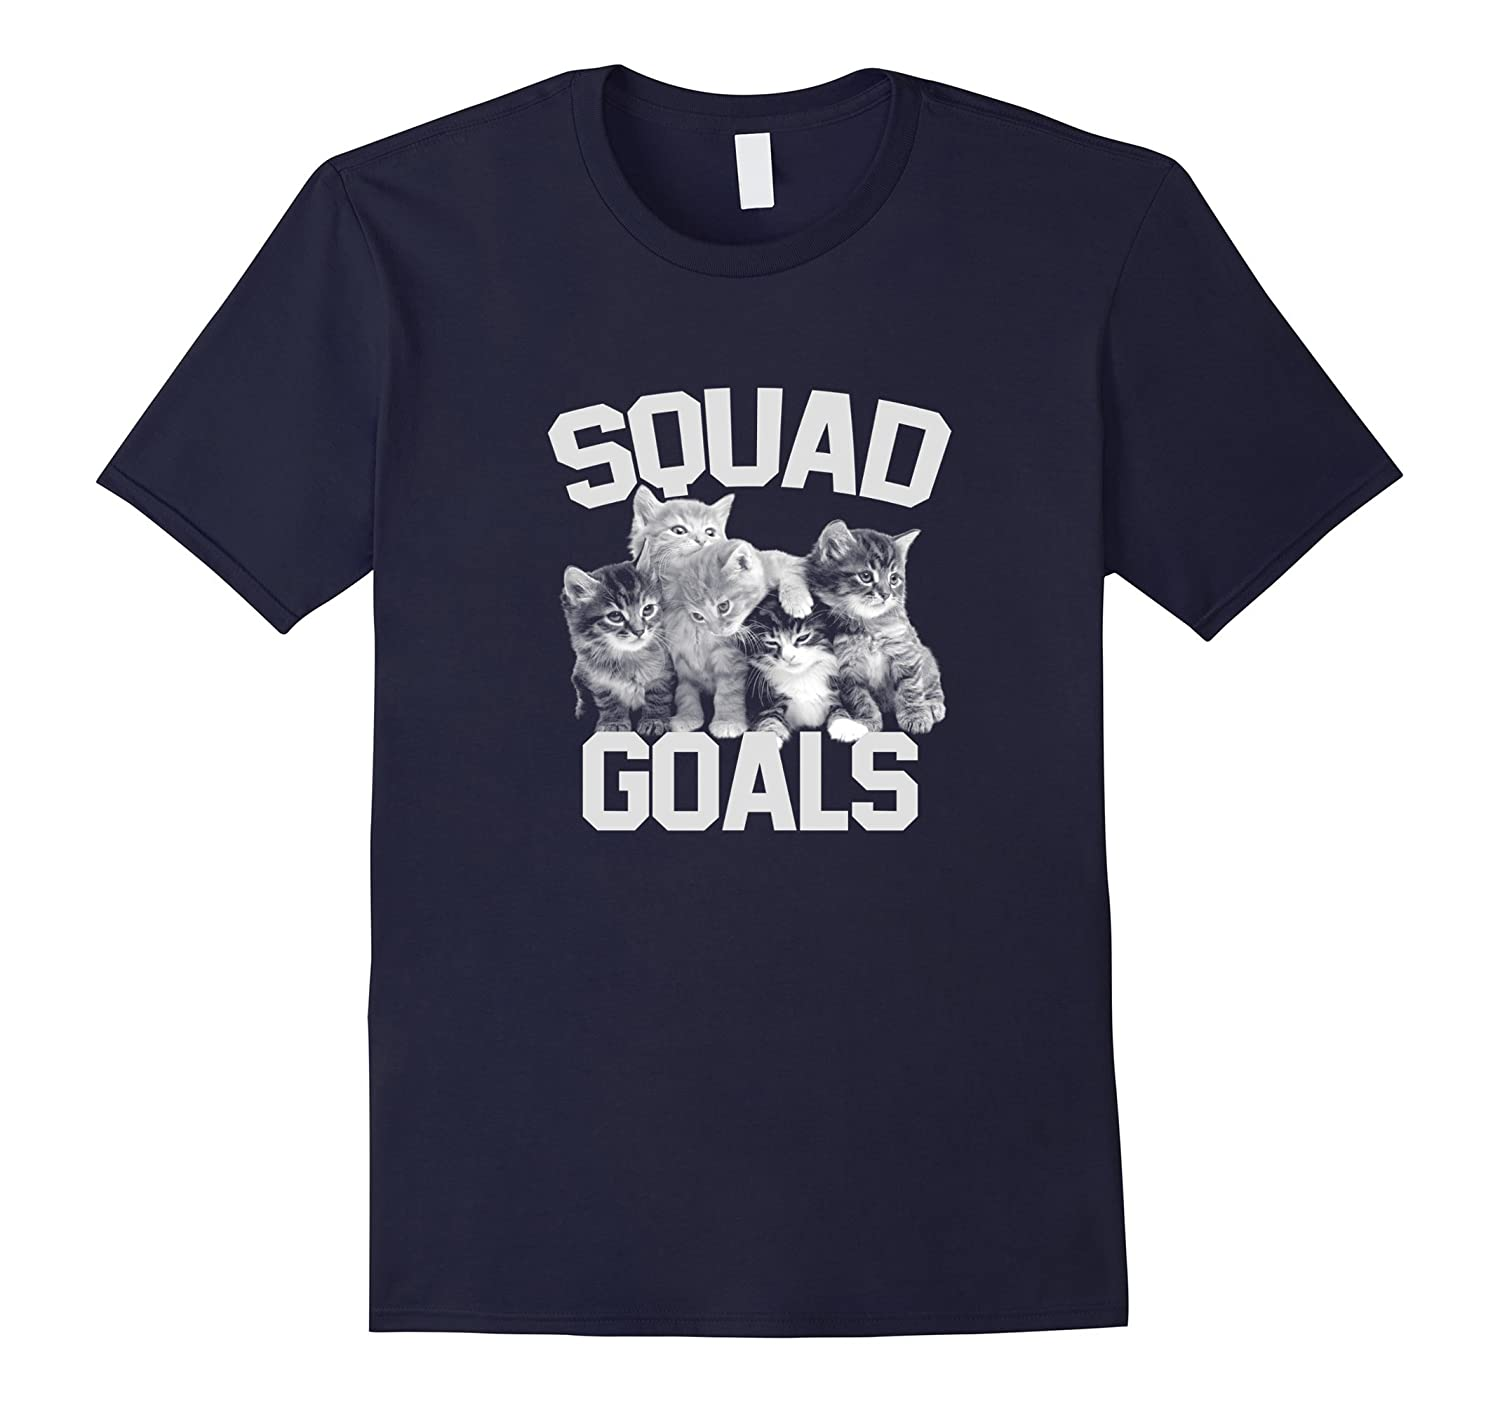 Squad Goals – Funny Cat T-Shirt